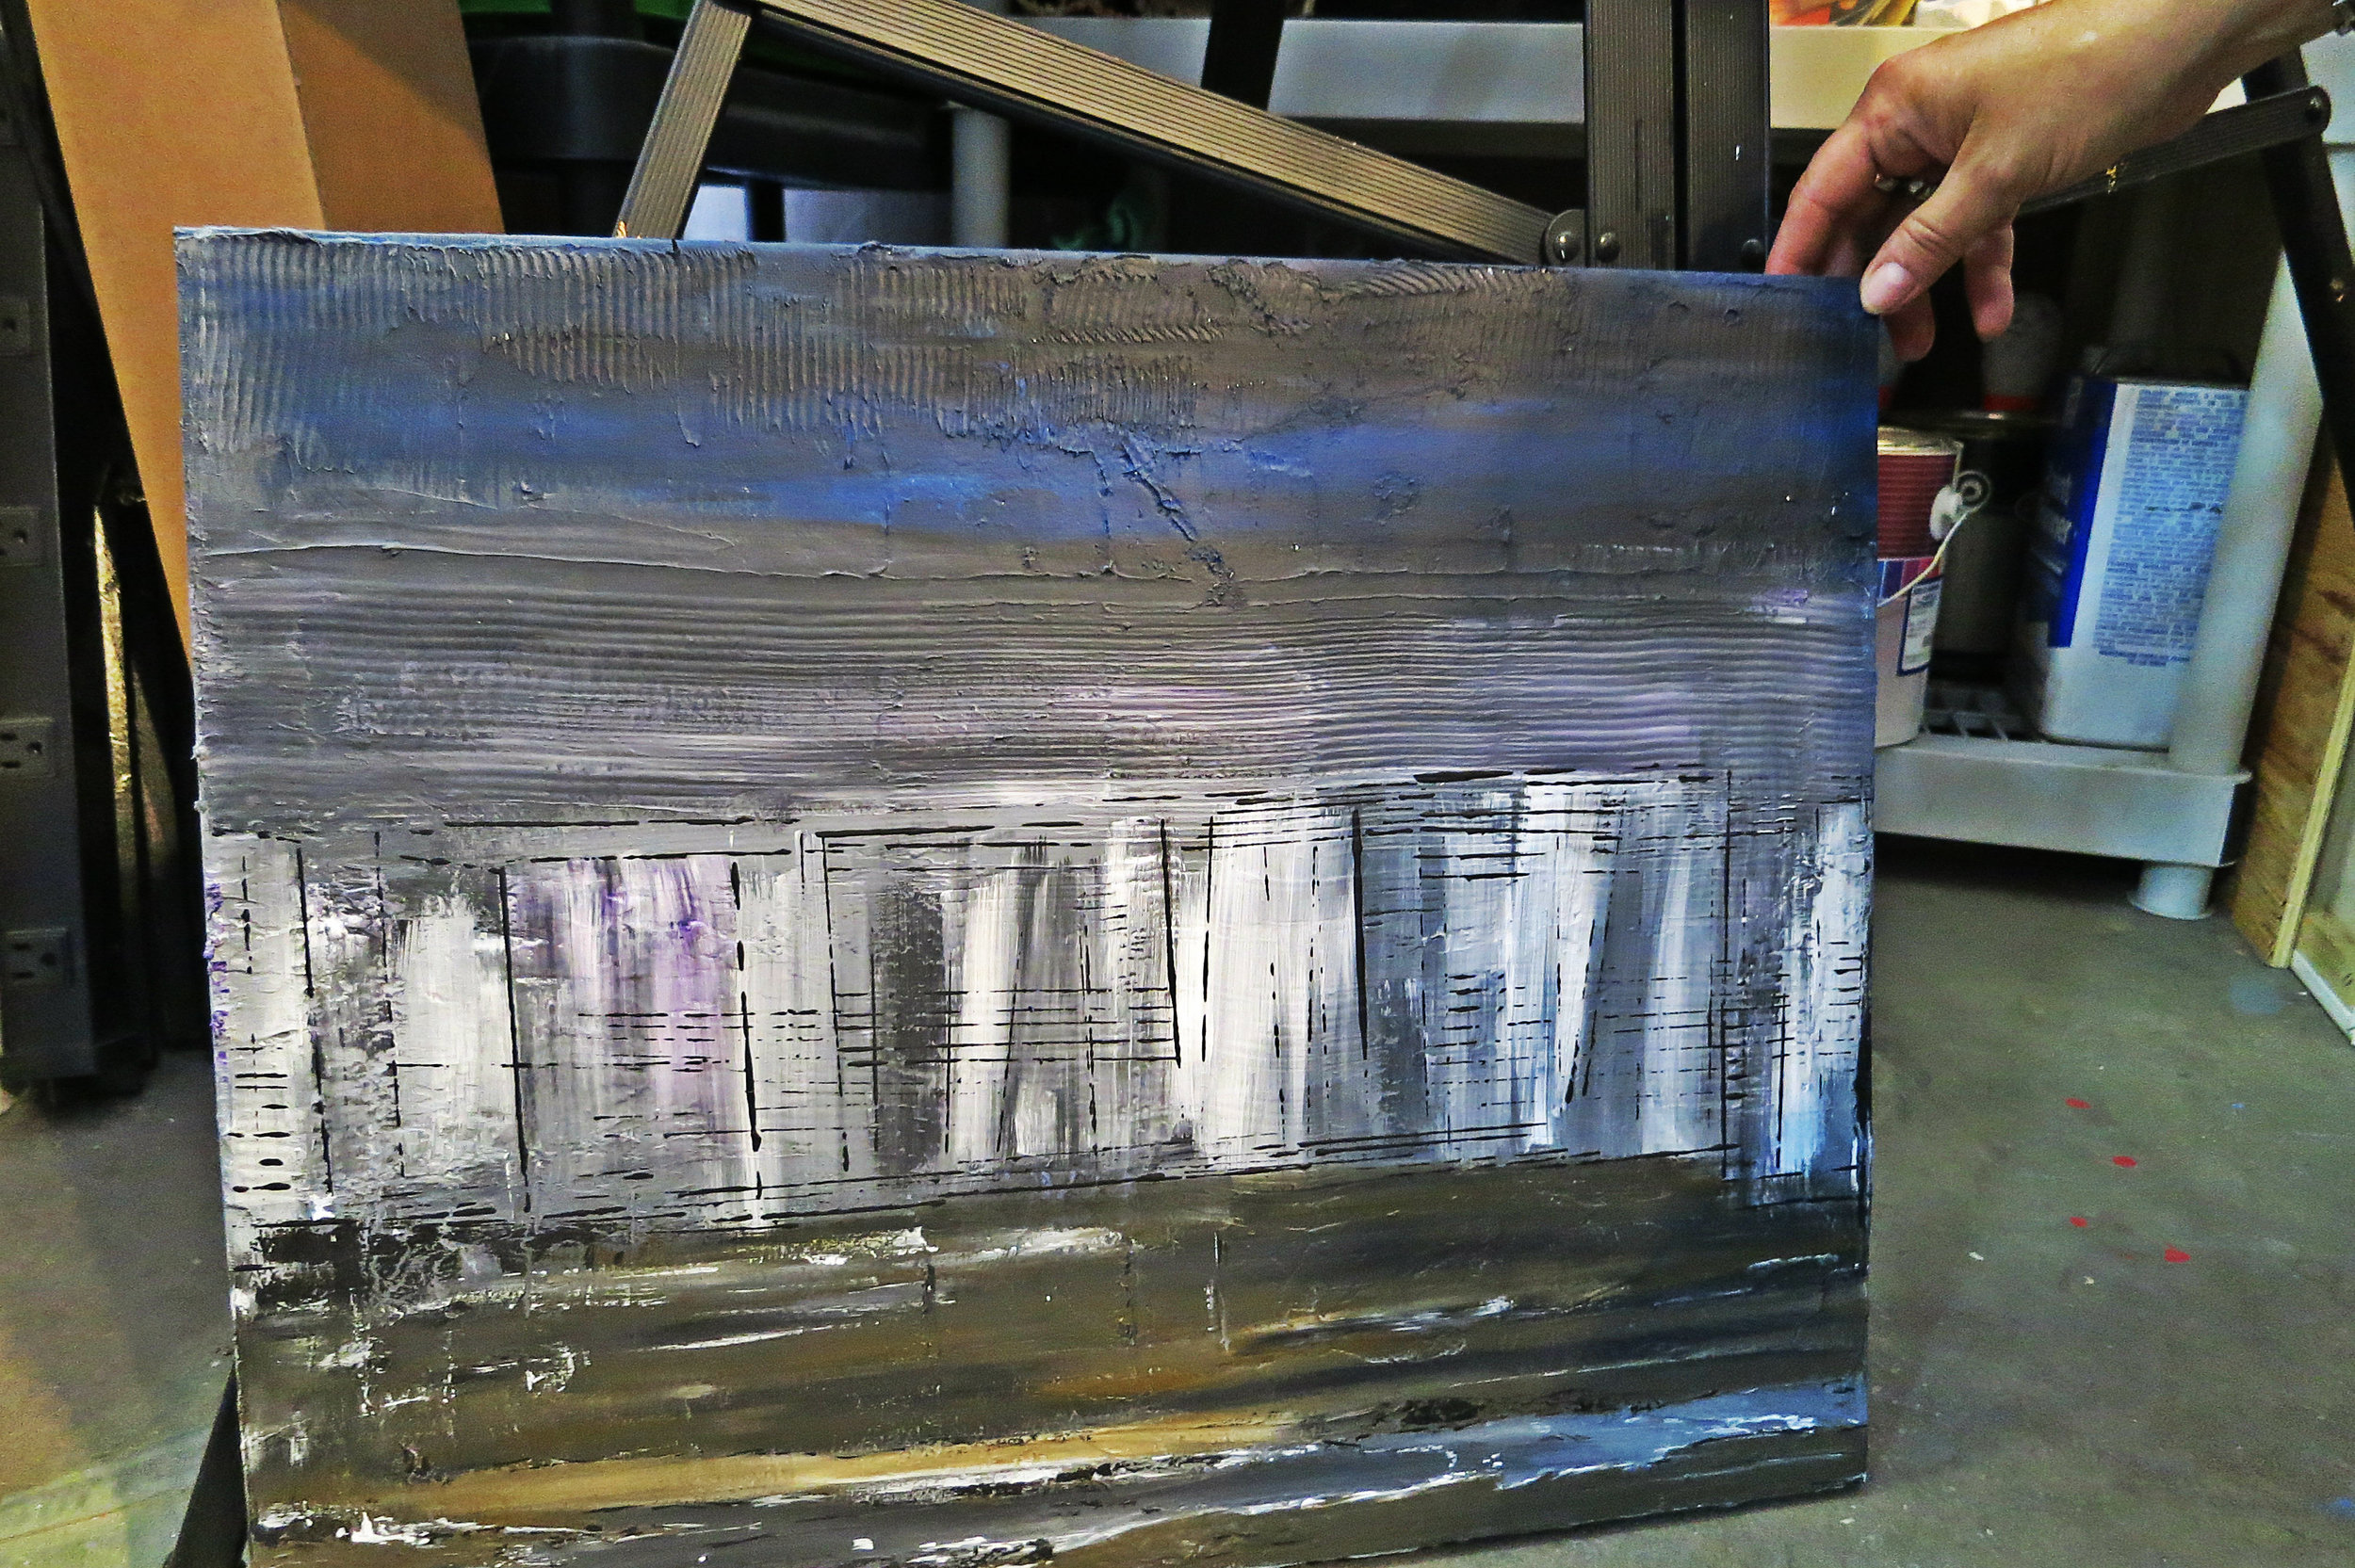 """Another work in progress: """"I have an idea here with charcoal ash, I want to create smog. But then down here, I want to create some daisies. It doesn't matter how dark, or gloomy or smoggy it is; there's a light, there's hope, there's a ray of sunshine."""""""